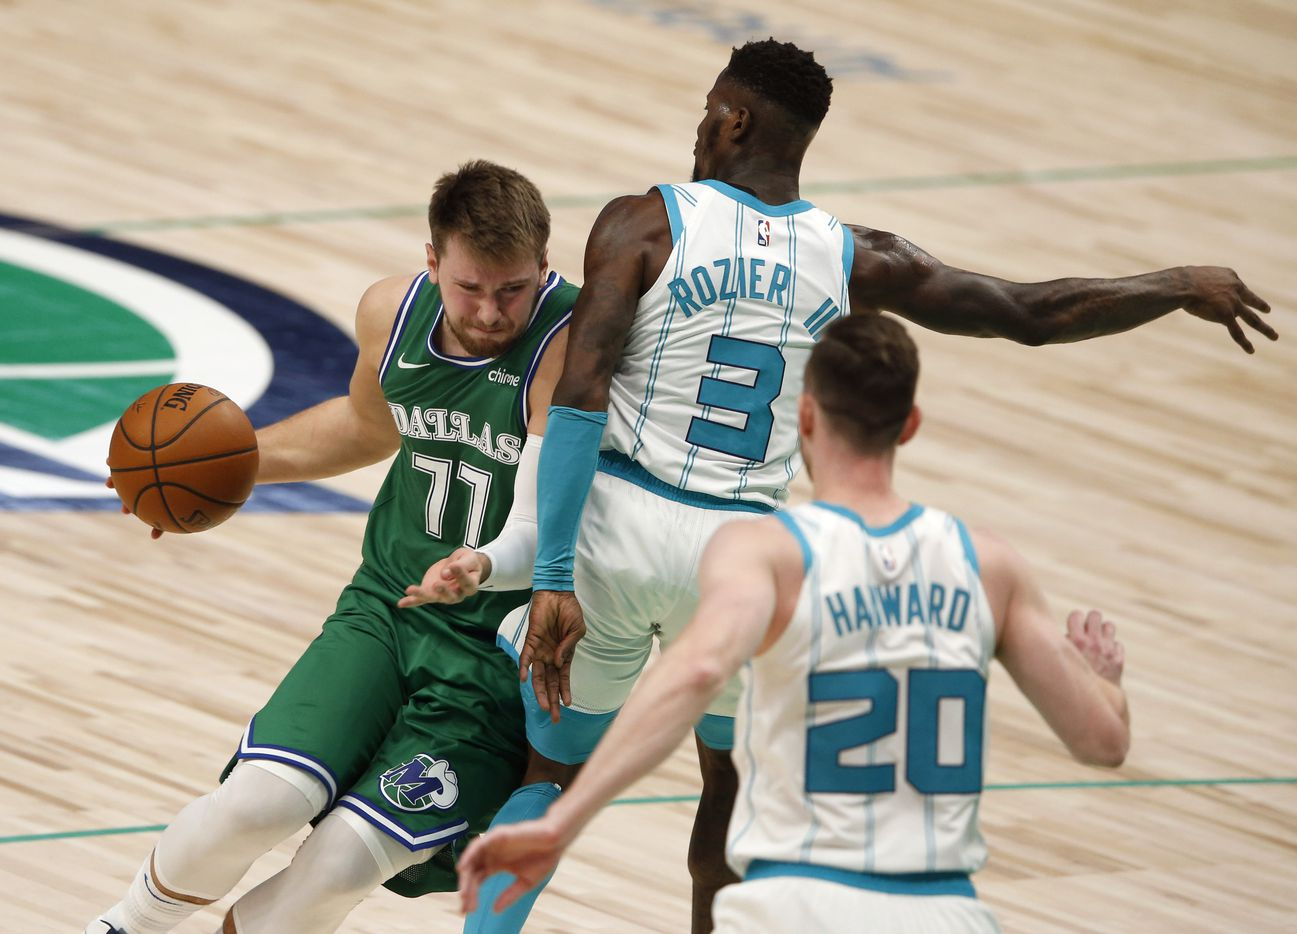 Dallas Mavericks guard Luka Doncic (77) attempts to get around Charlotte Hornets guard Terry Rozier (3) during the third quarter of play in the home opener at American Airlines Center on Wednesday, December 30, 2020 in Dallas. (Vernon Bryant/The Dallas Morning News)